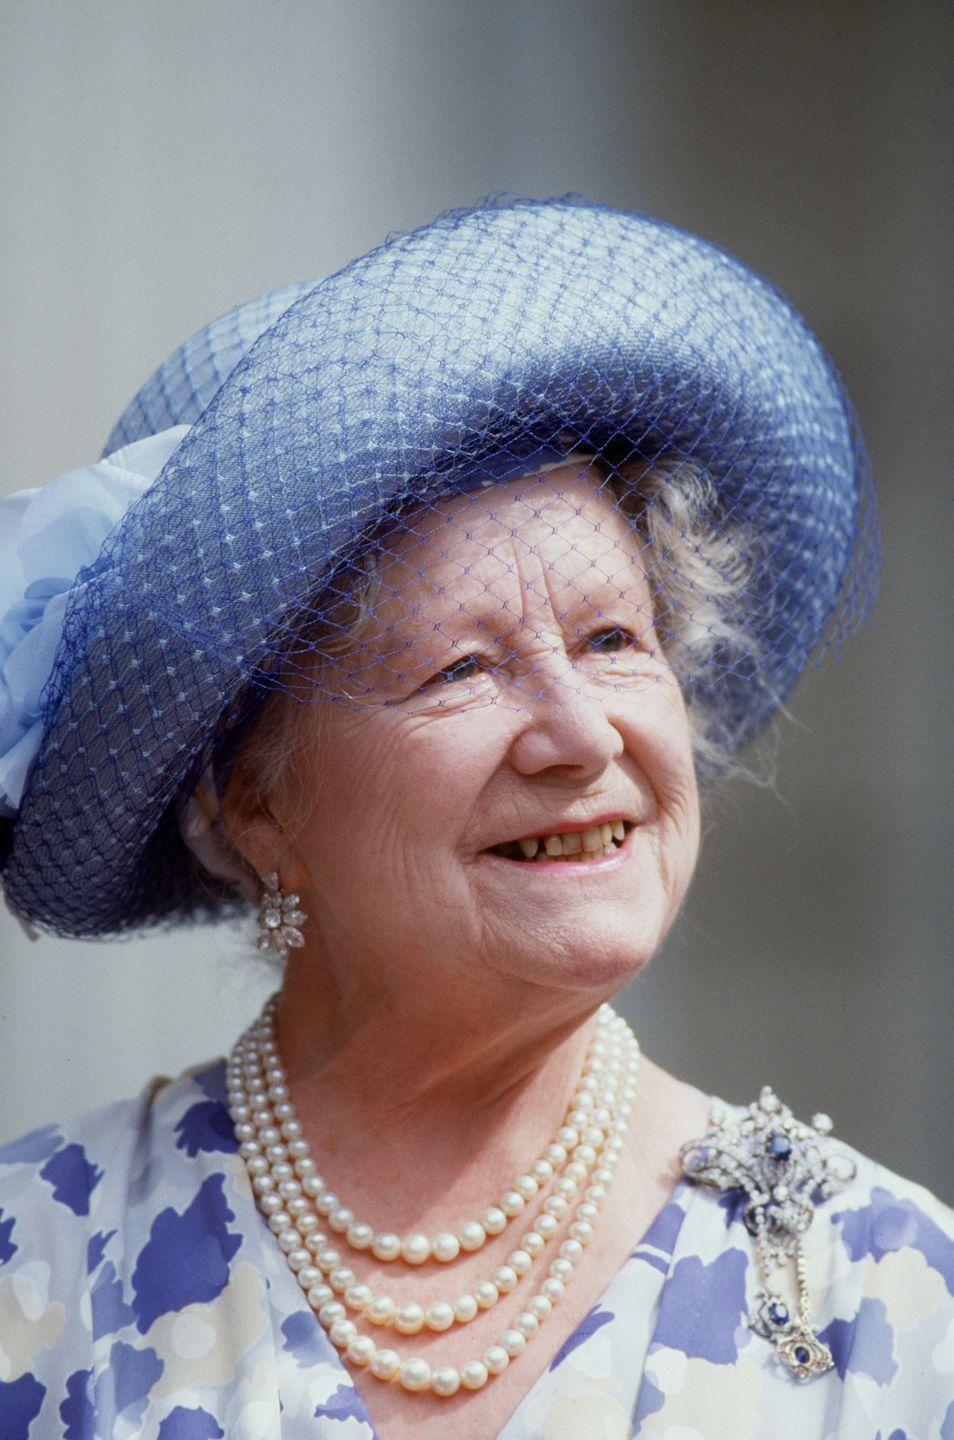 <p>The Queen Mother's brooch collection was legendary. For her 88th birthday celebration at Clarence House in 1988, she wore this diamond and sapphire brooch. </p>